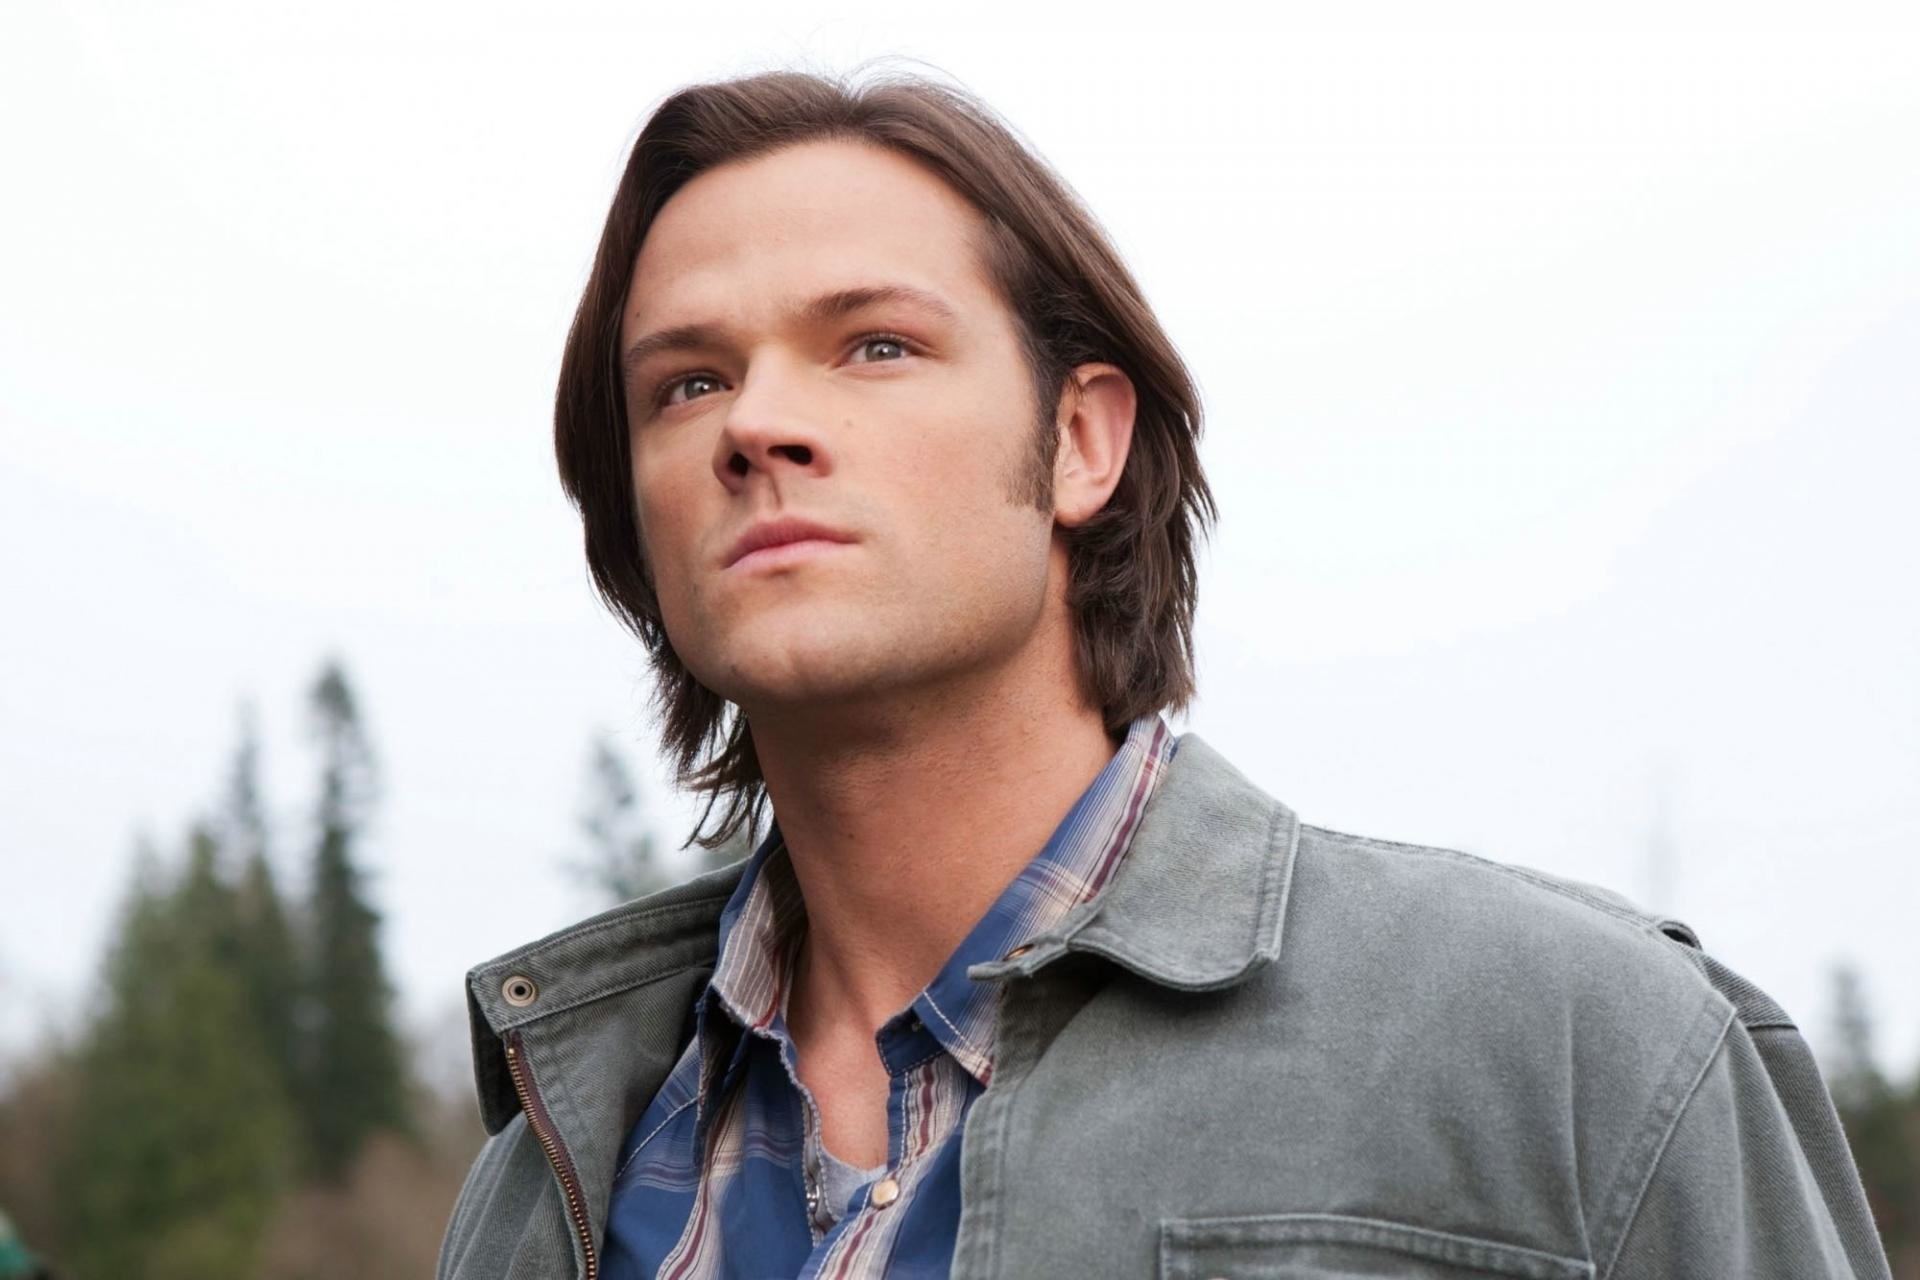 Awesome Jared Padalecki free wallpaper ID:270141 for hd 1920x1280 computer